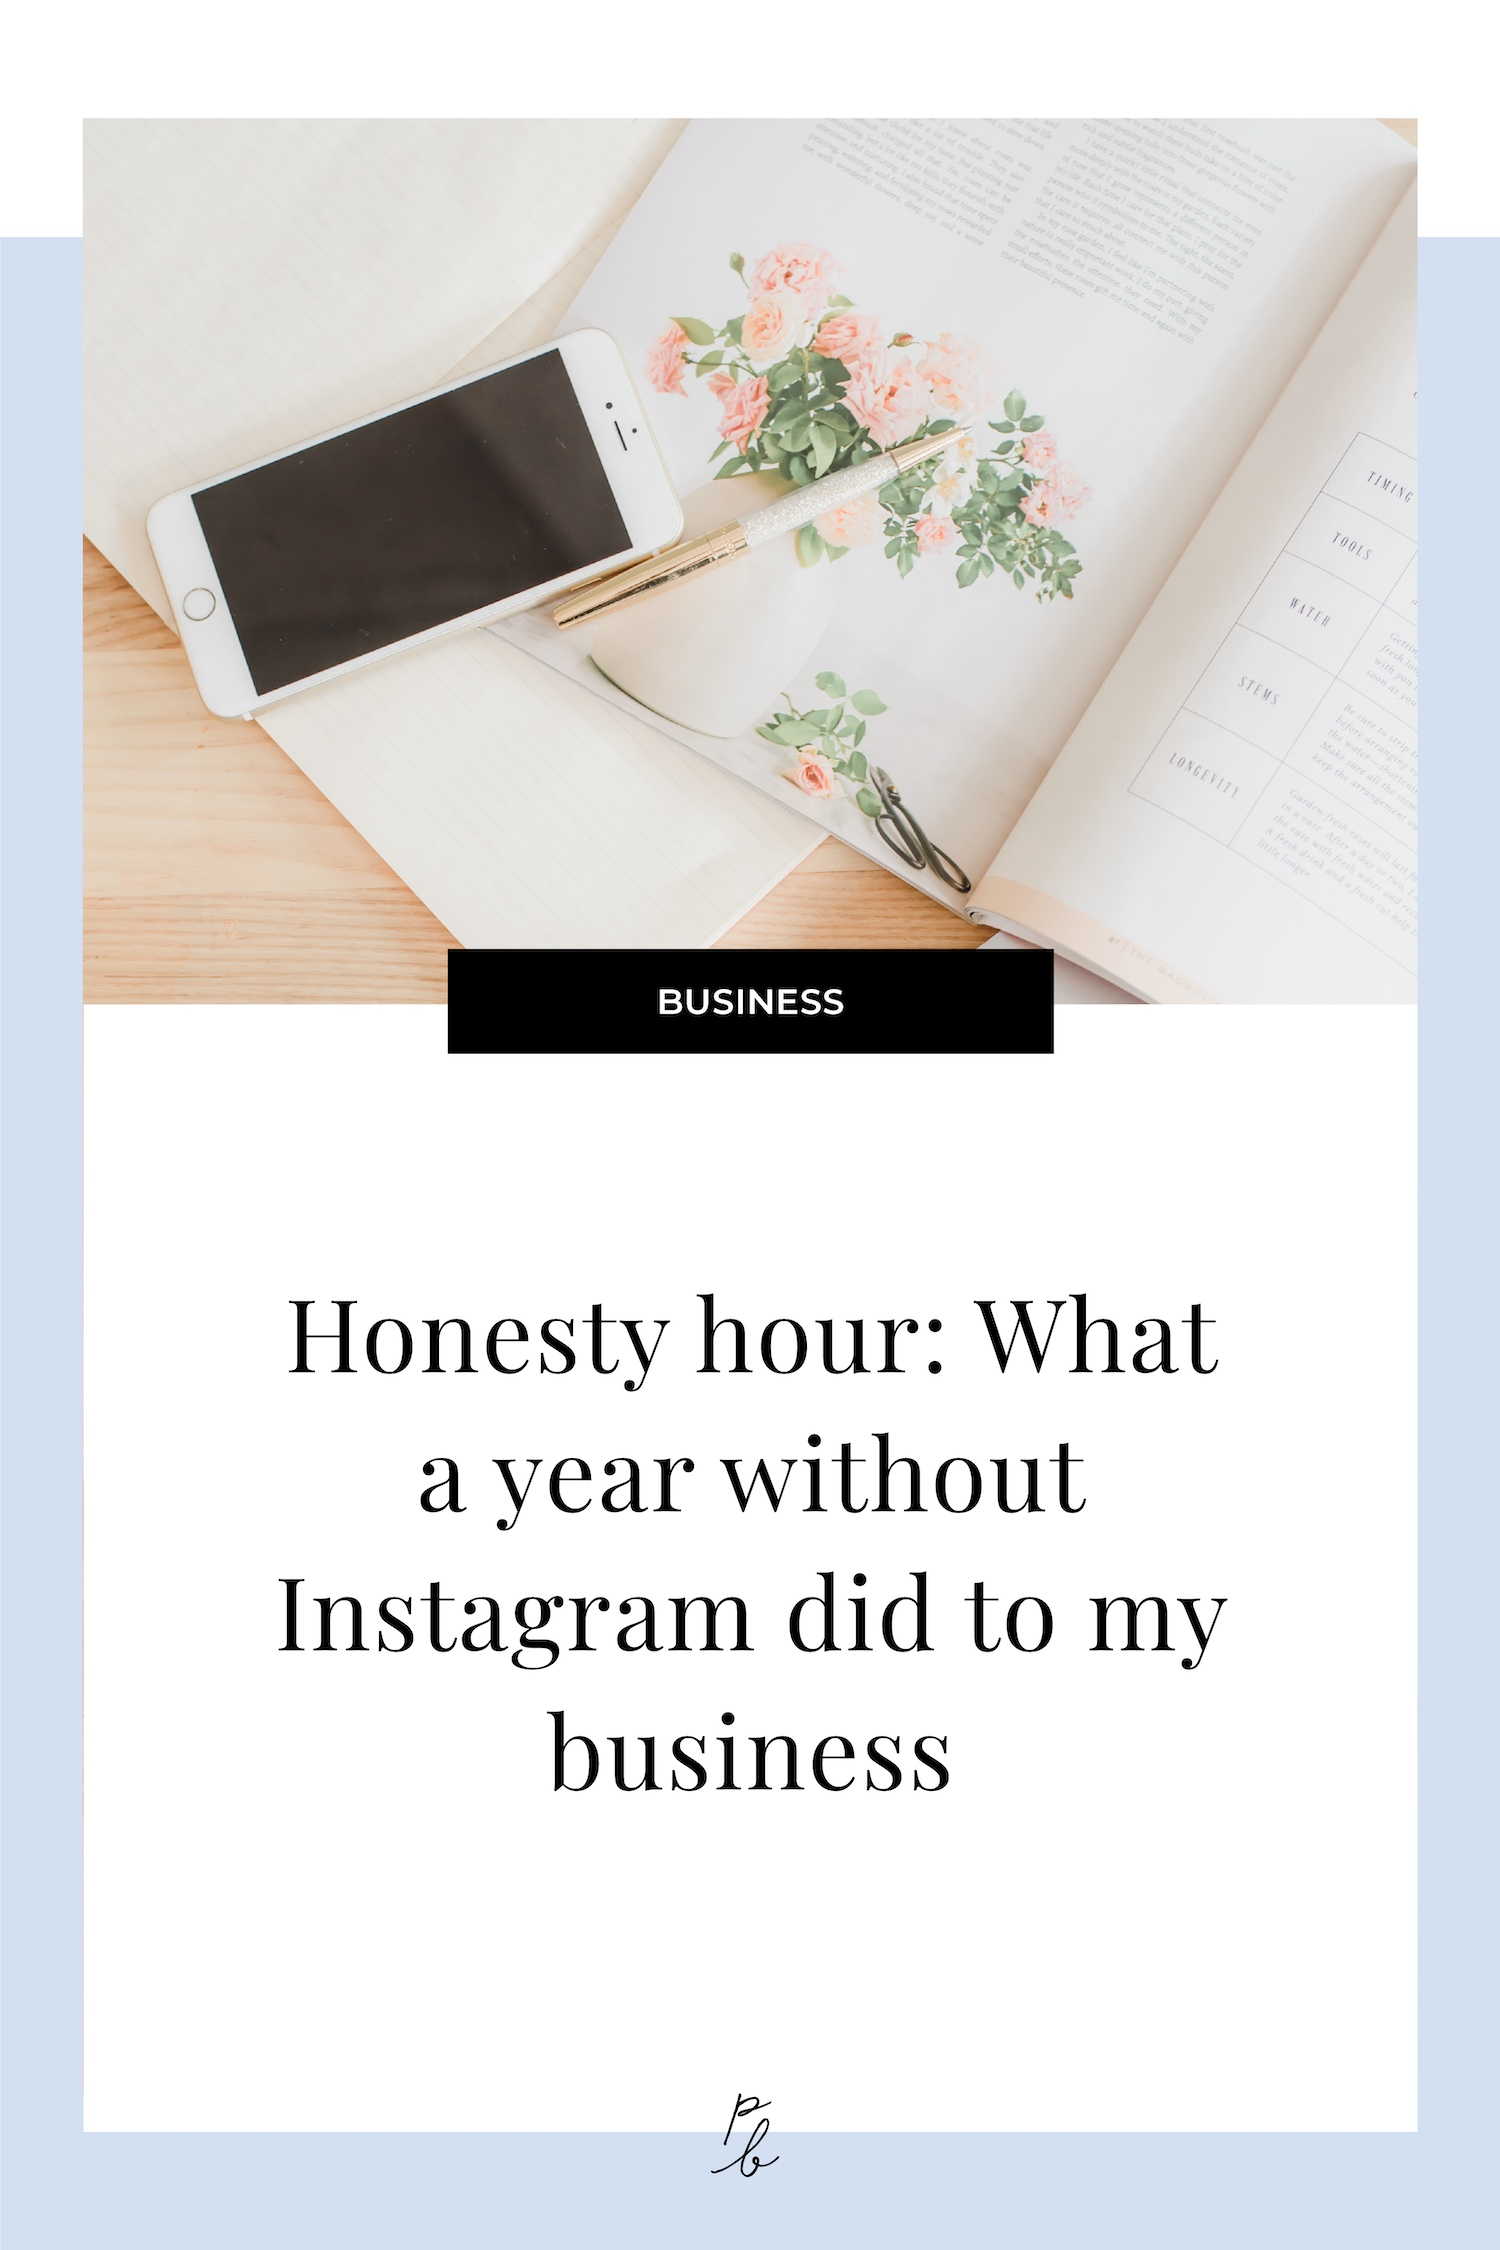 What a year without Instagram did to my business.jpg